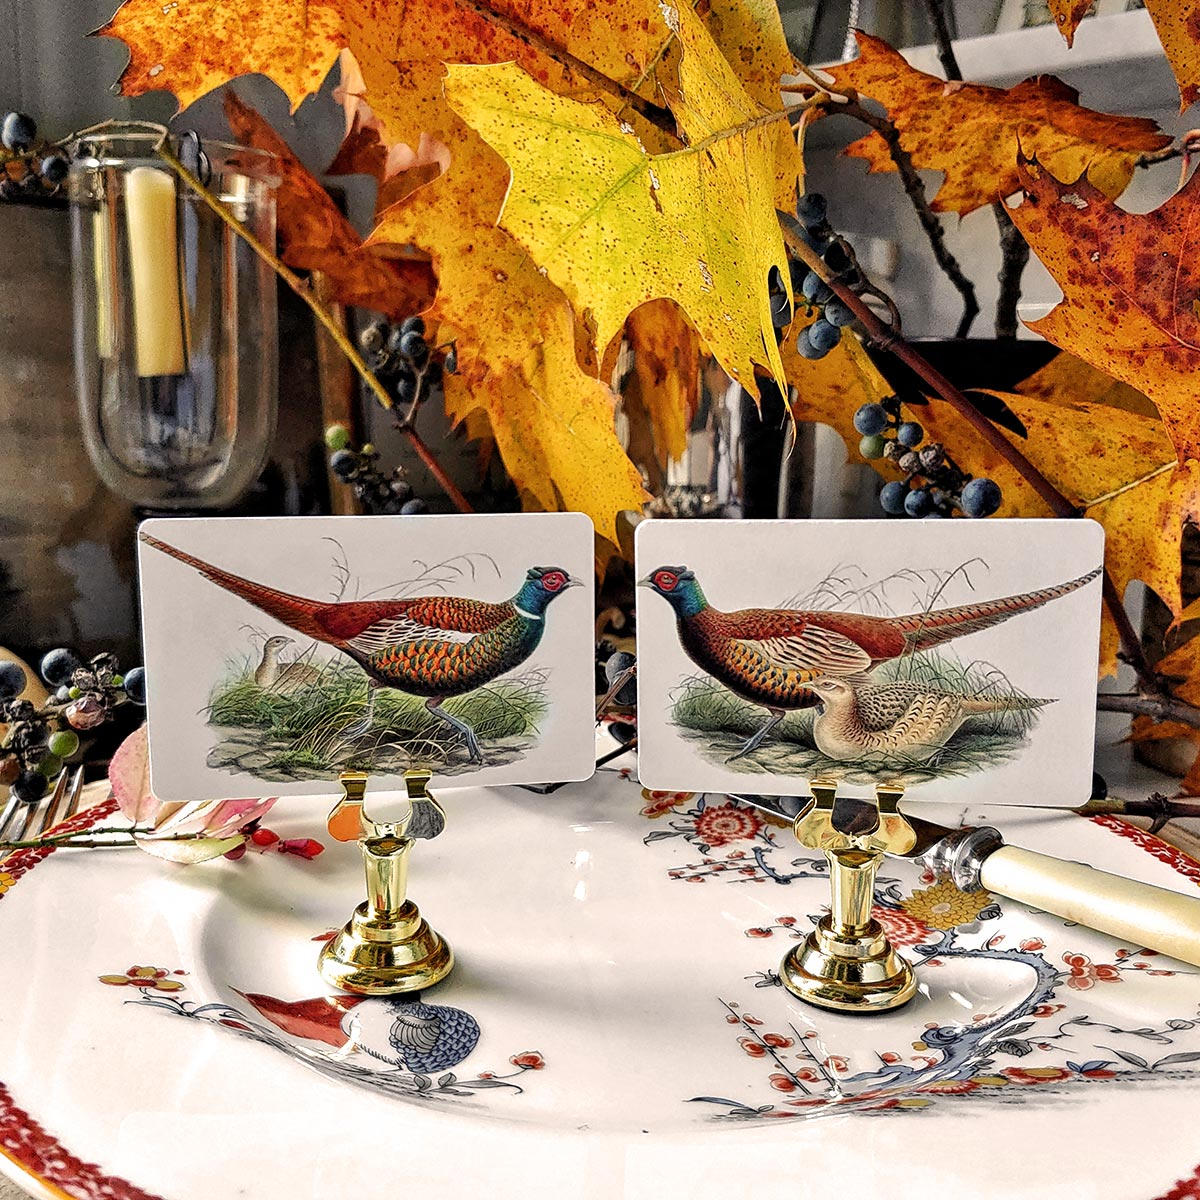 The Punctilious Mr. P's 'Fall Pheasants' place card set